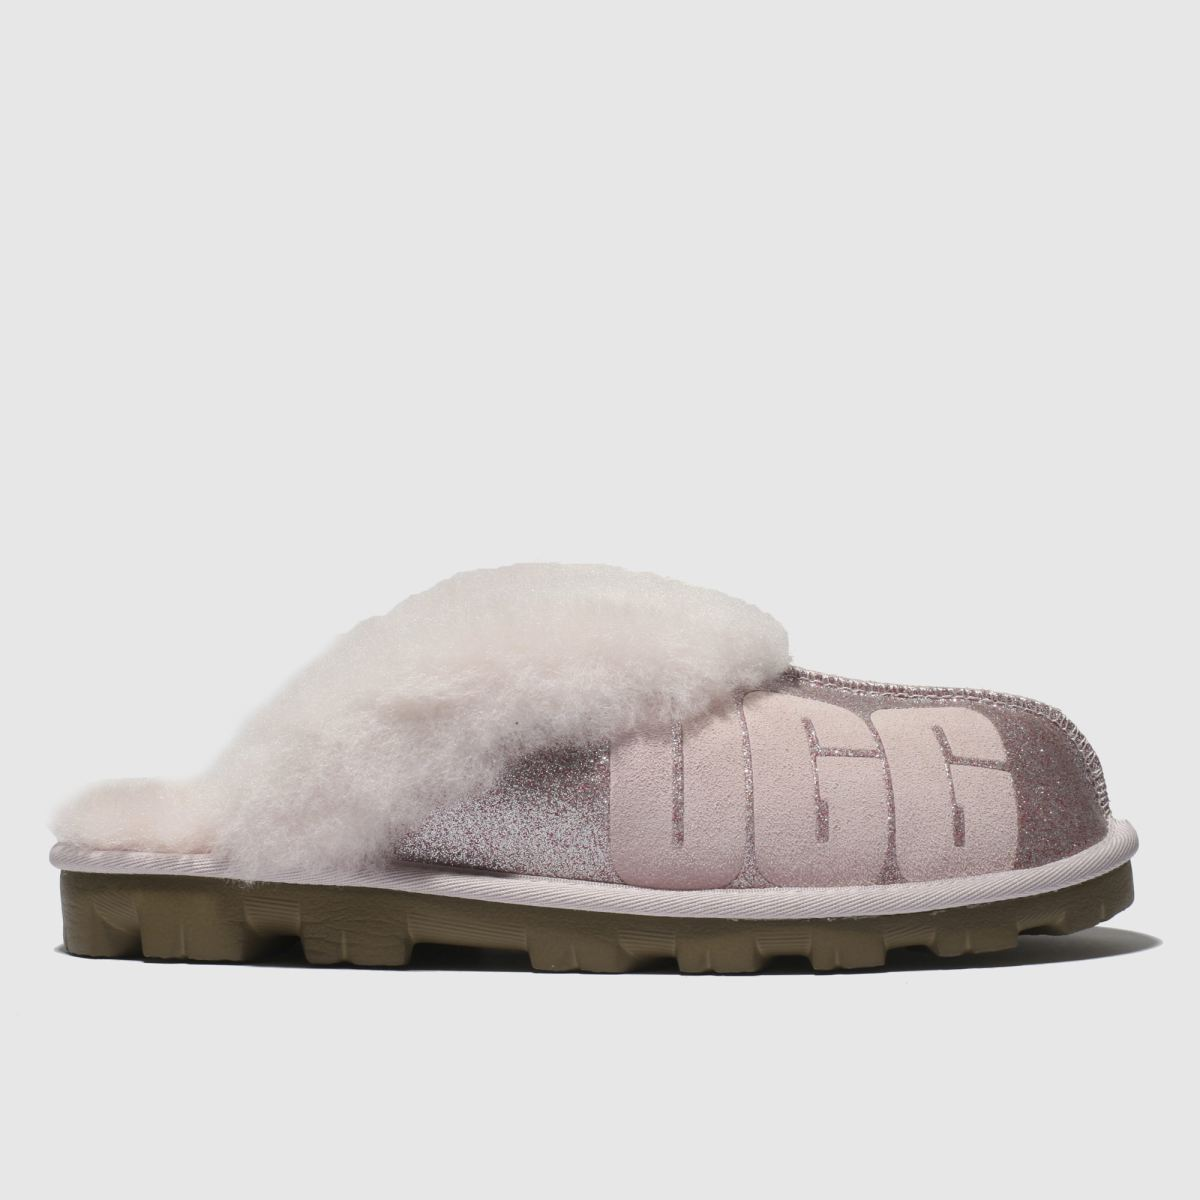 Ugg Pale Pink Coquette Sparkle Slippers